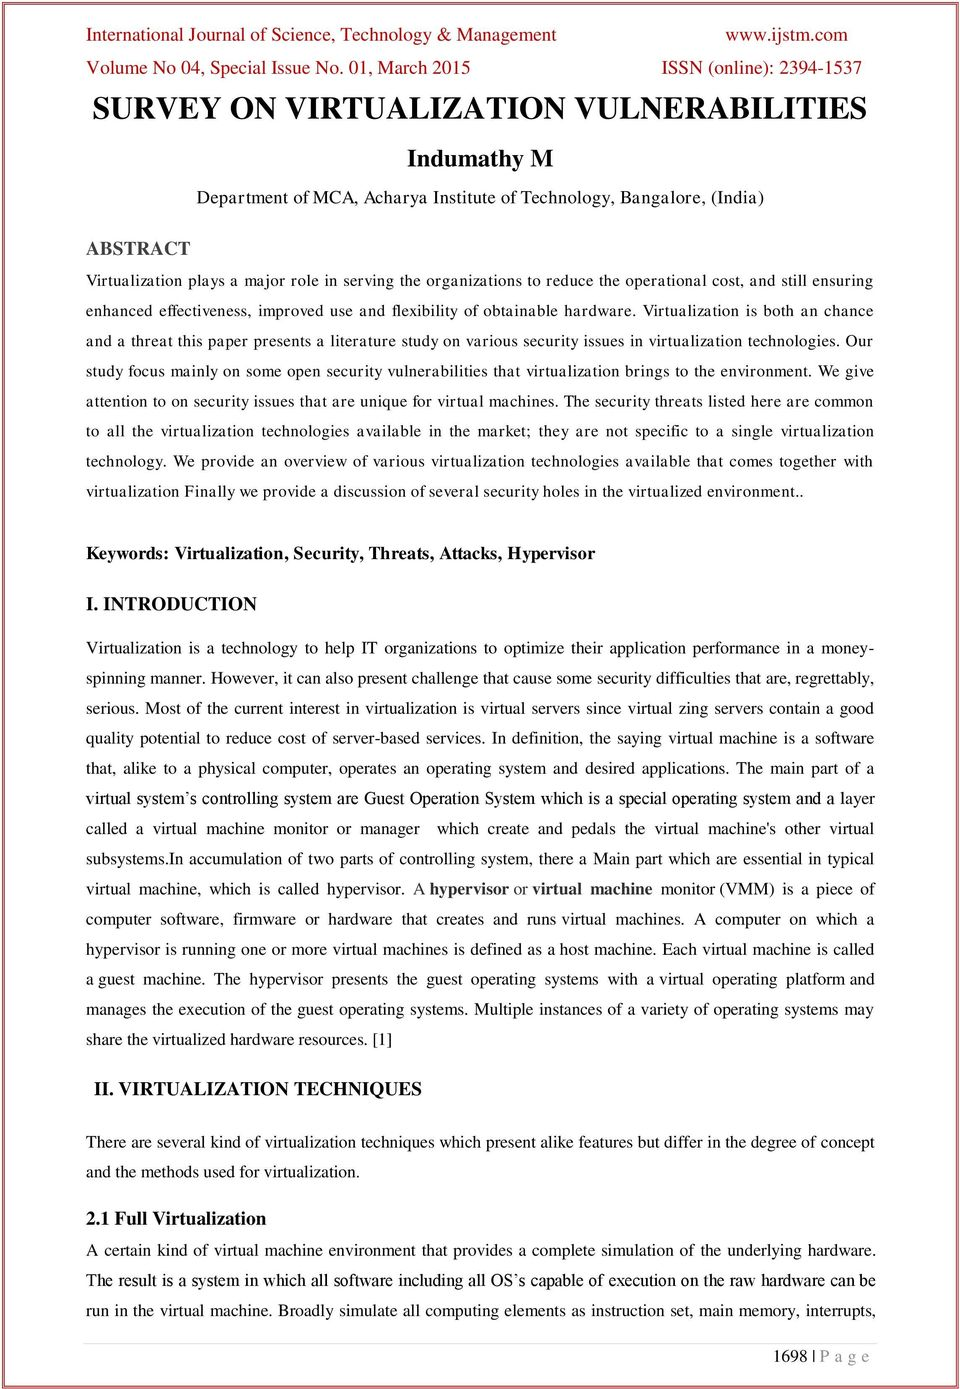 Virtualization is both an chance and a threat this paper presents a literature study on various security issues in virtualization technologies.